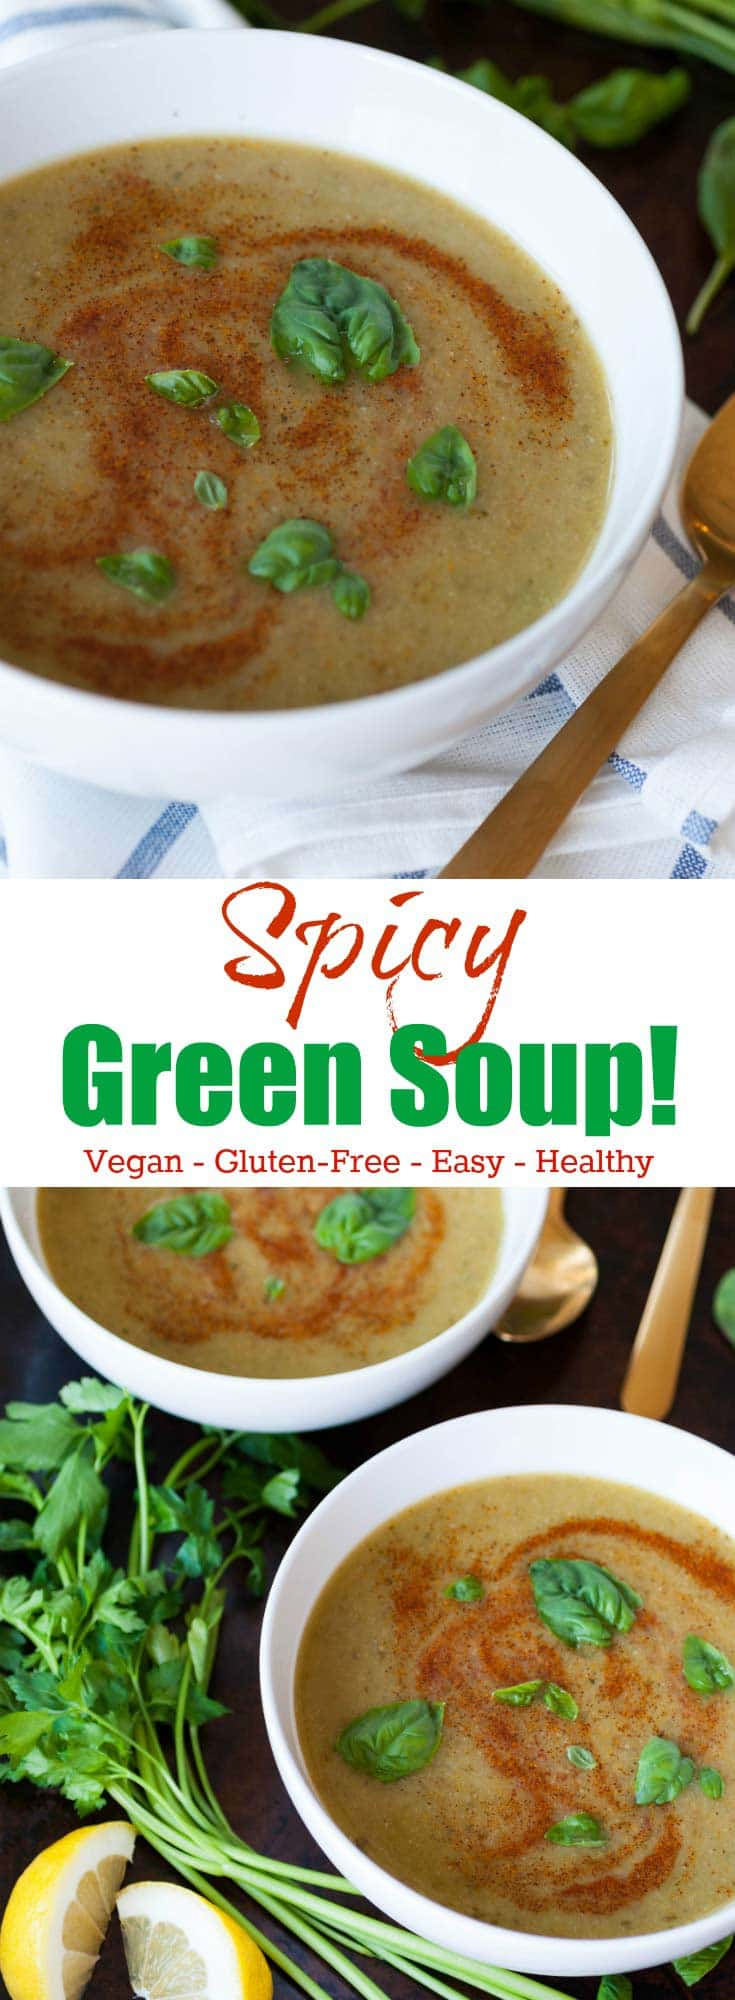 Spicy Green Soup is easy, healthy, vegan and gluten-free! Make it for dinner tonight!